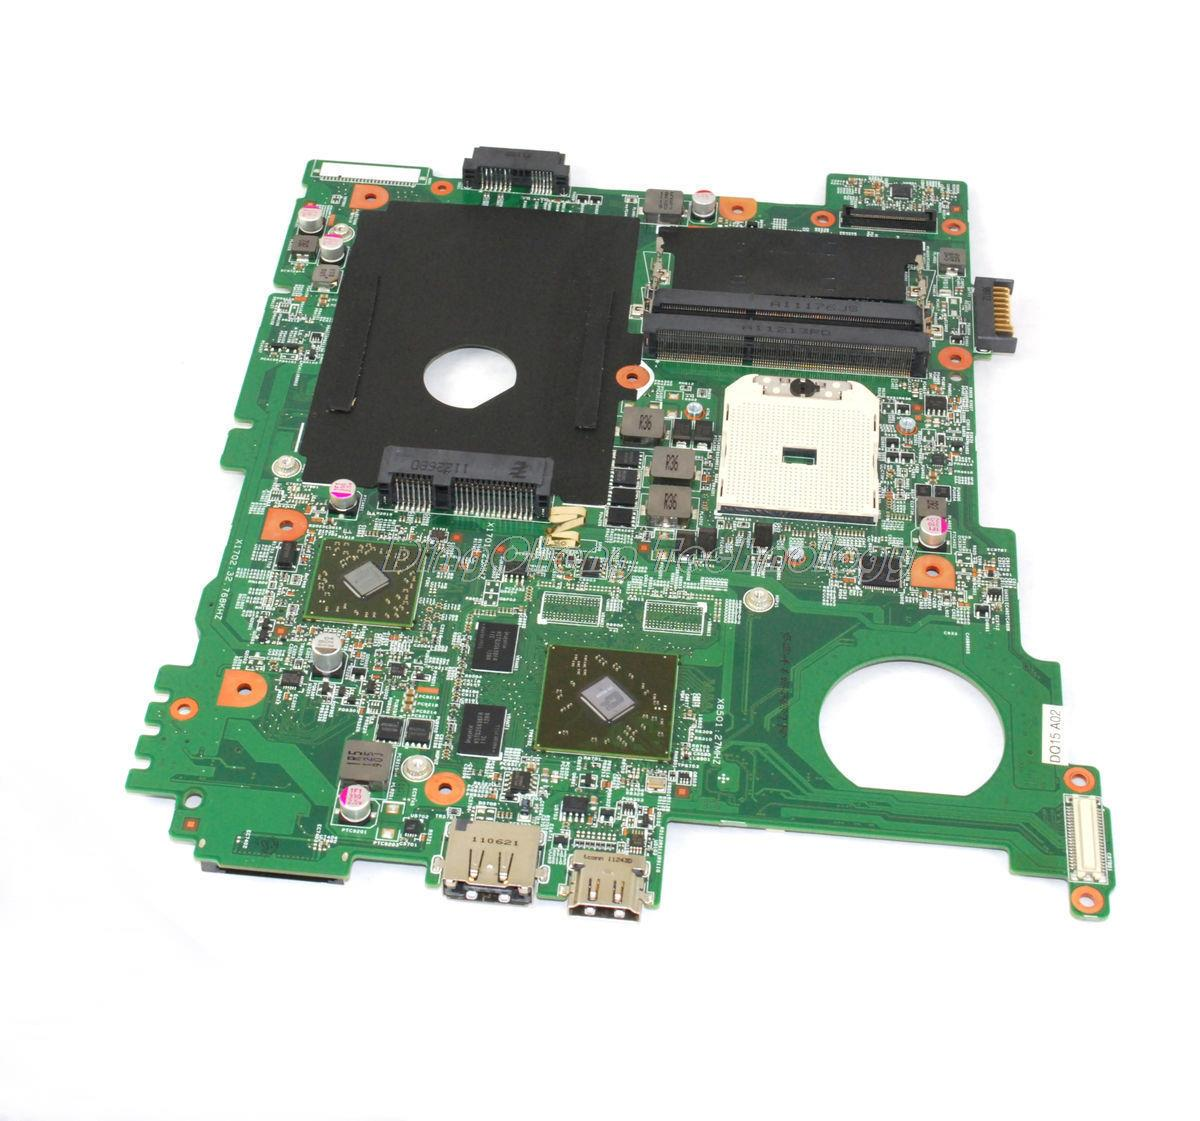 SHELI laptop Motherboard/mainboard for dell inspiron M5110 for AMD cpu with 4 video chips non-integrated graphics card dell inspiron 3558